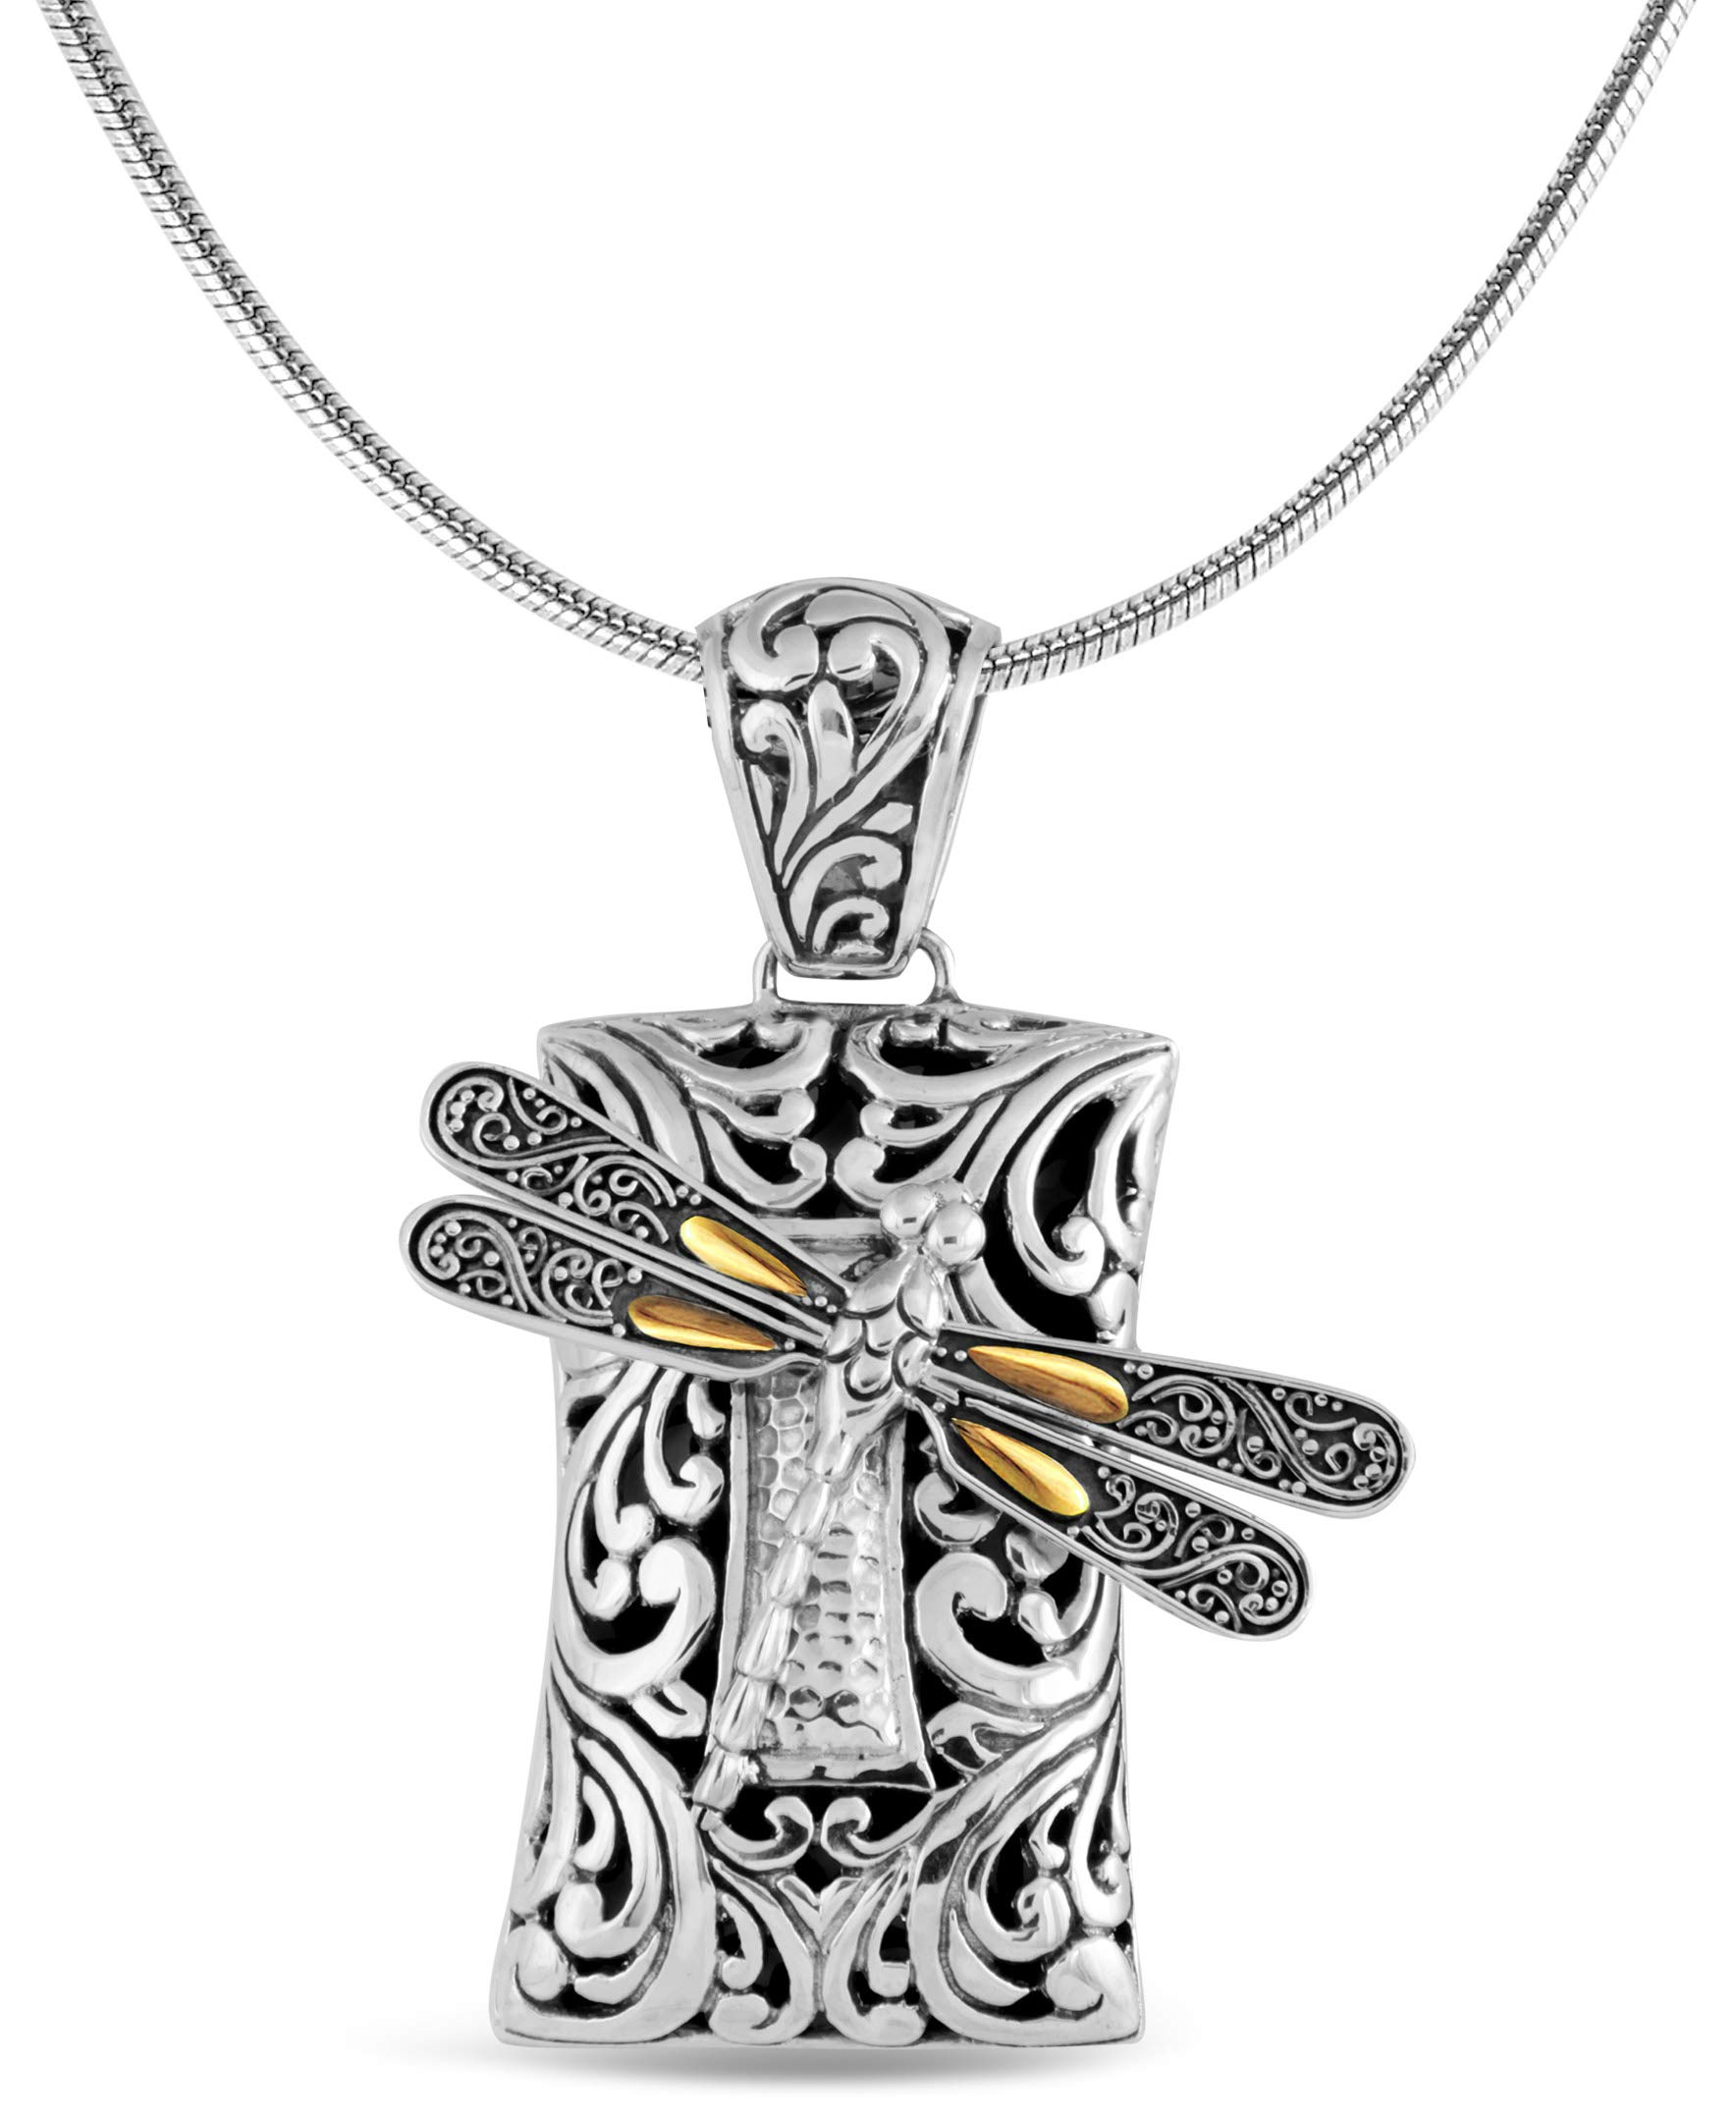 DEVATA Sweet Dragonfly Hammered Sterling Silver 925 Necklace with 18K Gold Accents SFS8563TT